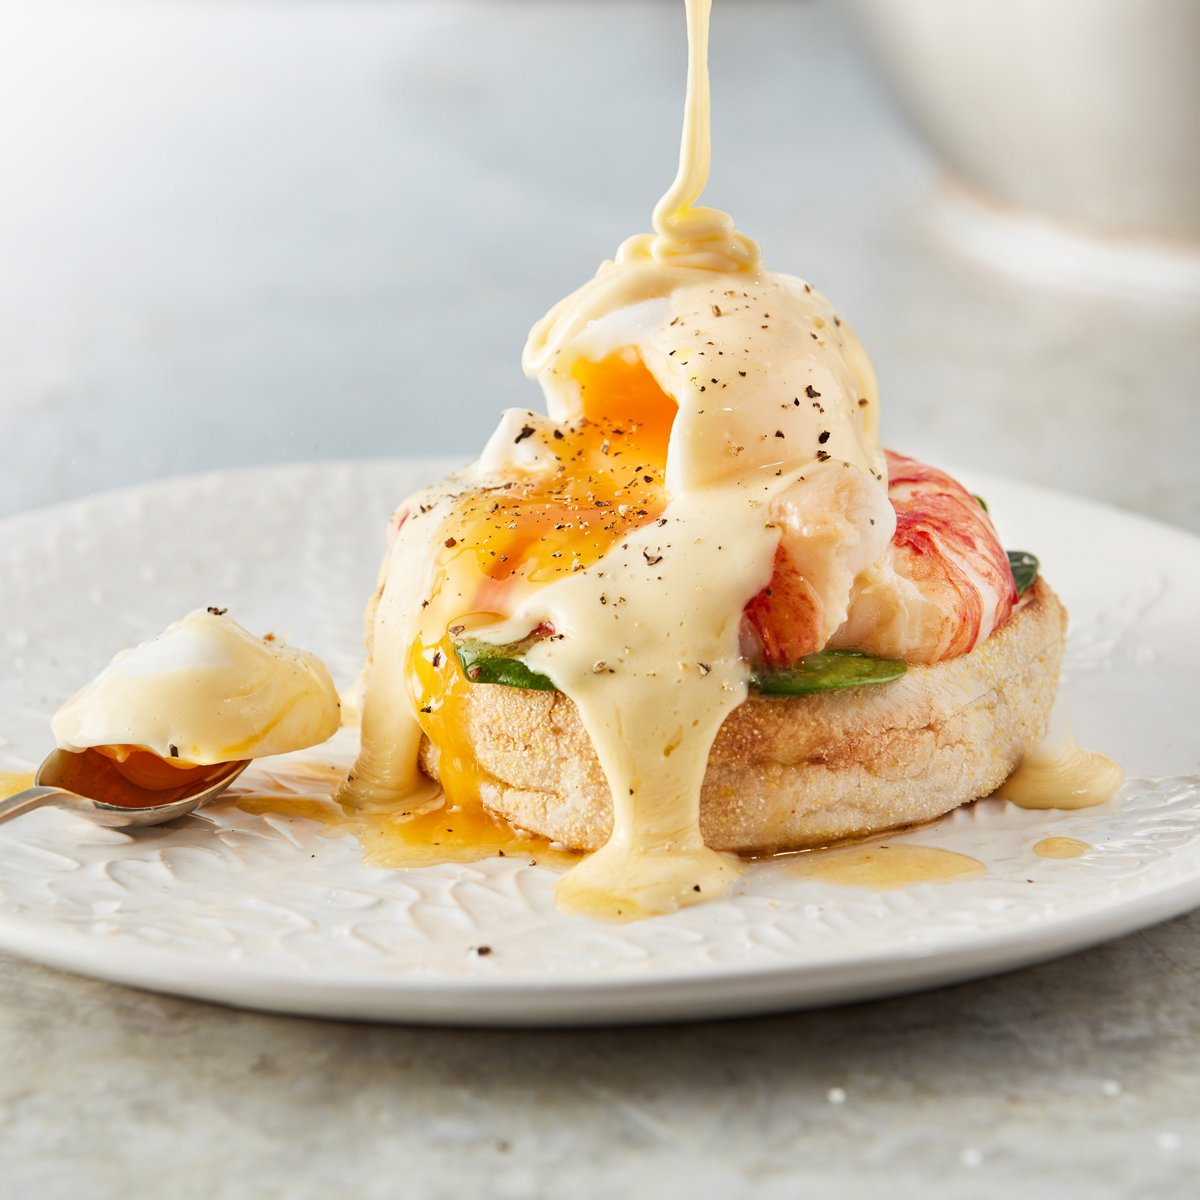 Did you know that today is #NationalEggsBenedictDay?  If you want to celebrate in style  why not give our Lobster Eggs Benedict a go   For the full recipe head to our Facebook page  <br>http://pic.twitter.com/hX8faGtt4w